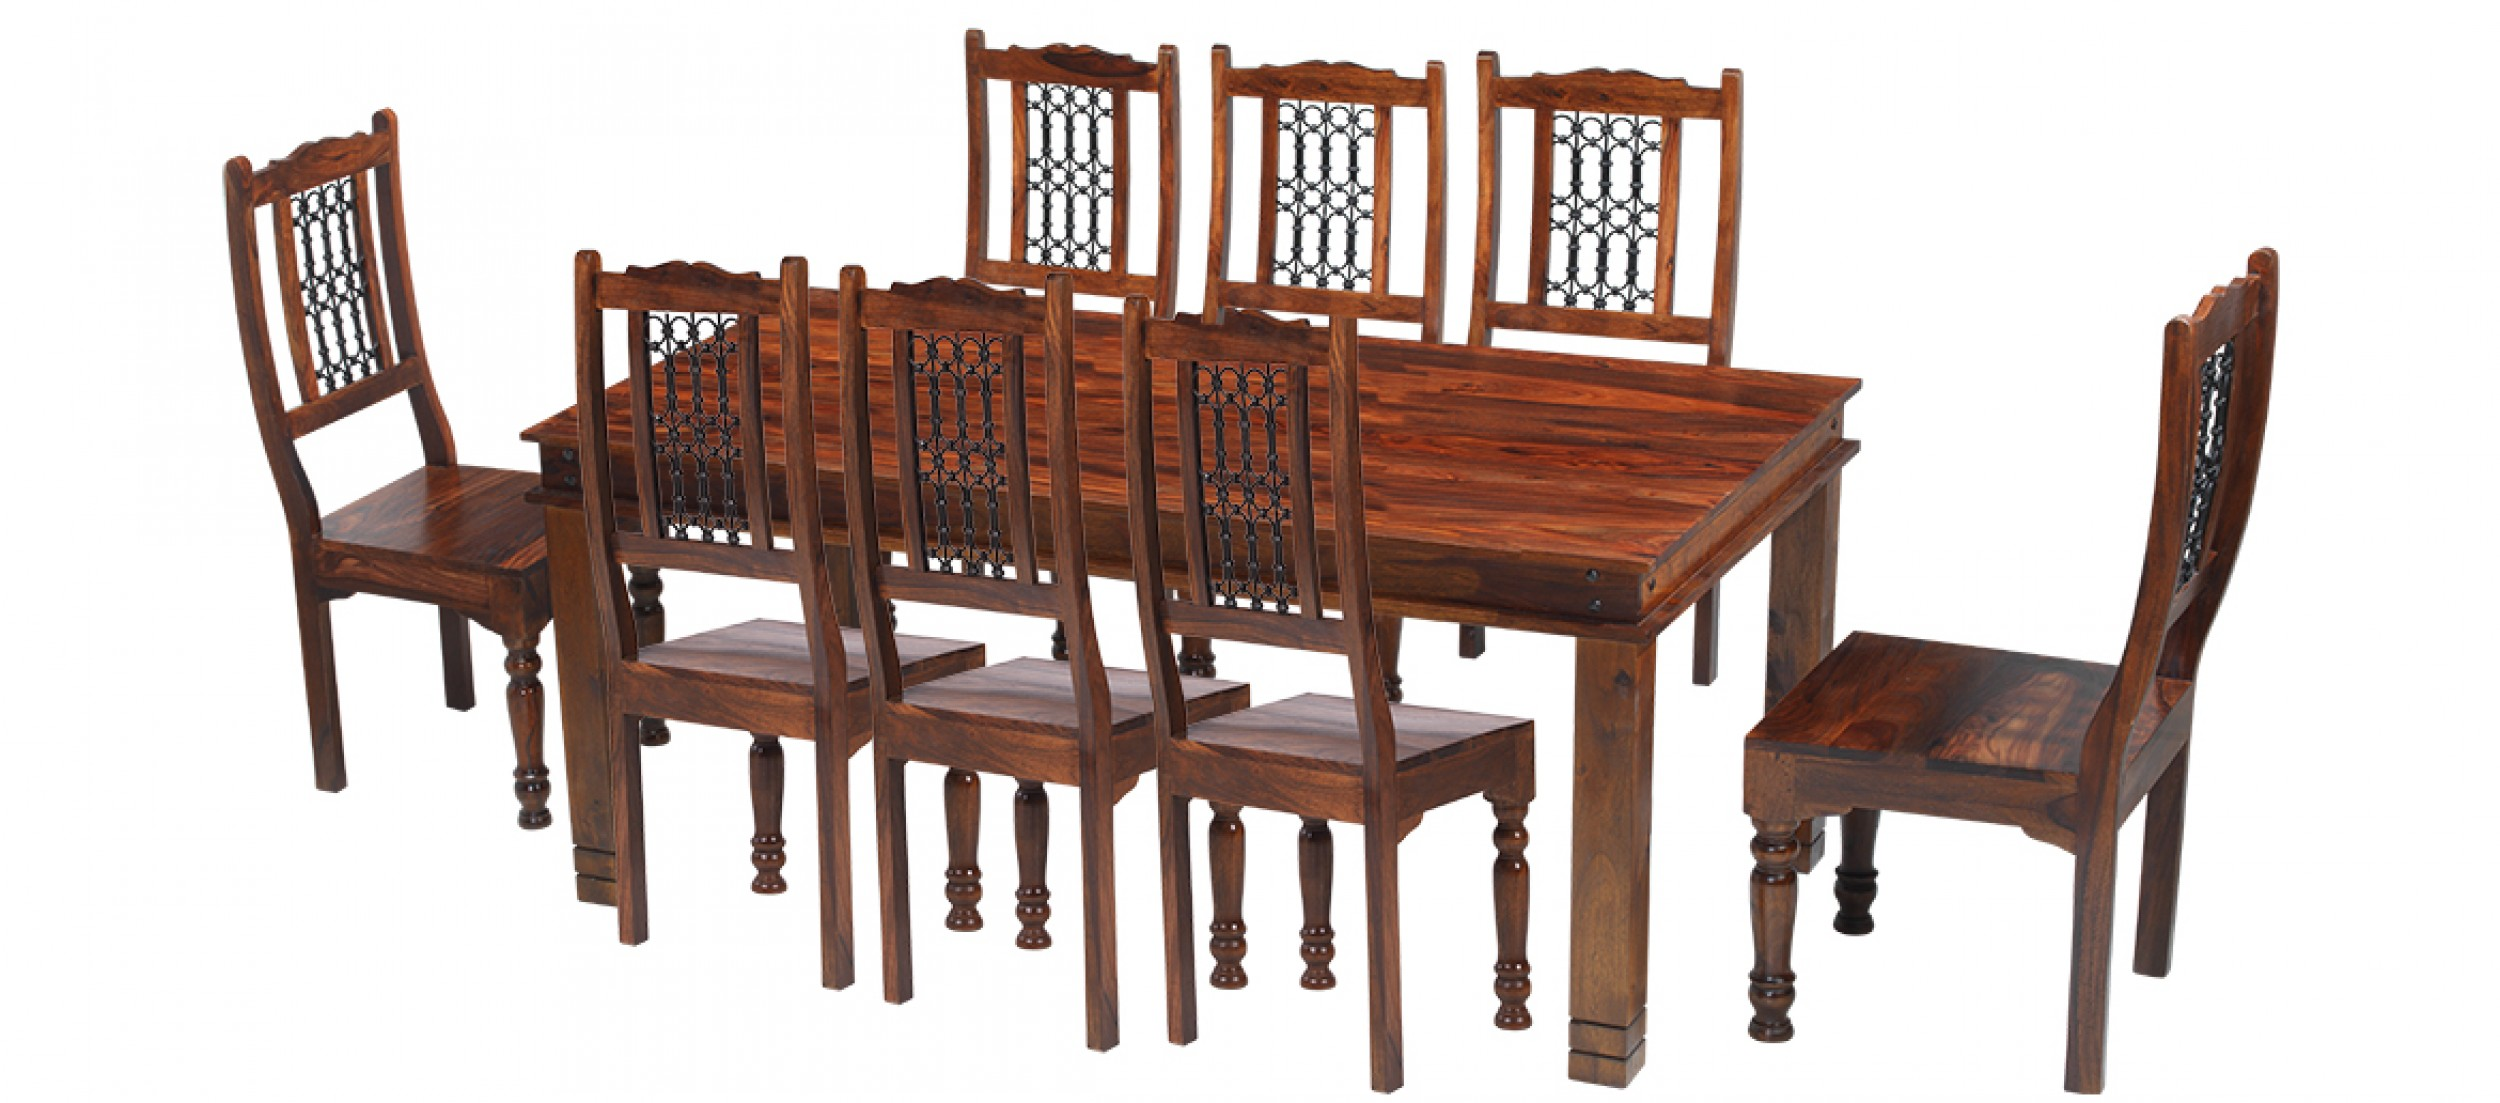 lichfield extending htm dining and chair seater table large leather tables set oak chairs